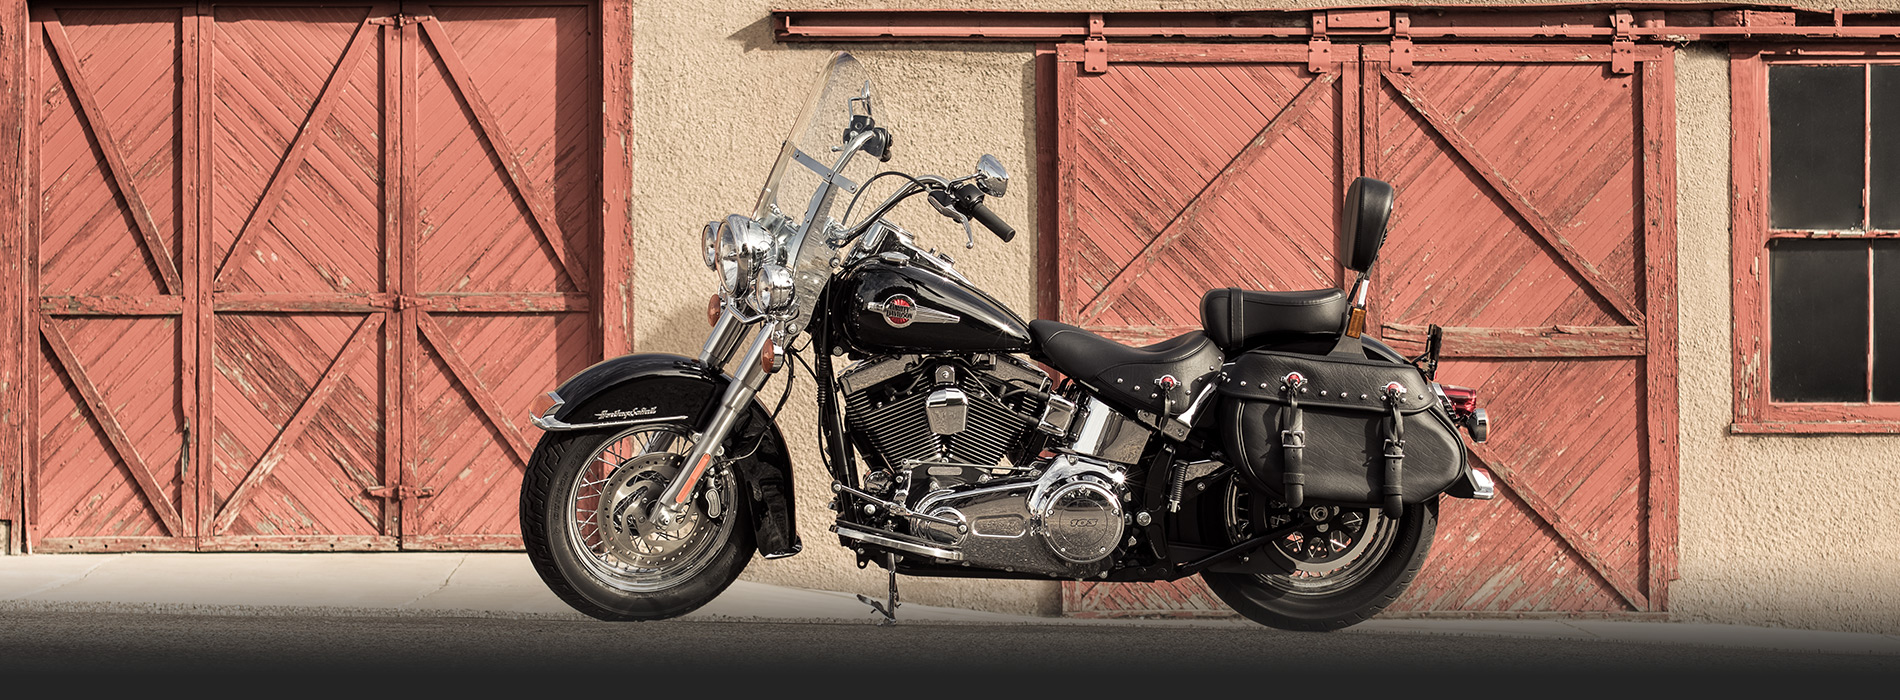 17-hd-heritage-softail-classic-1